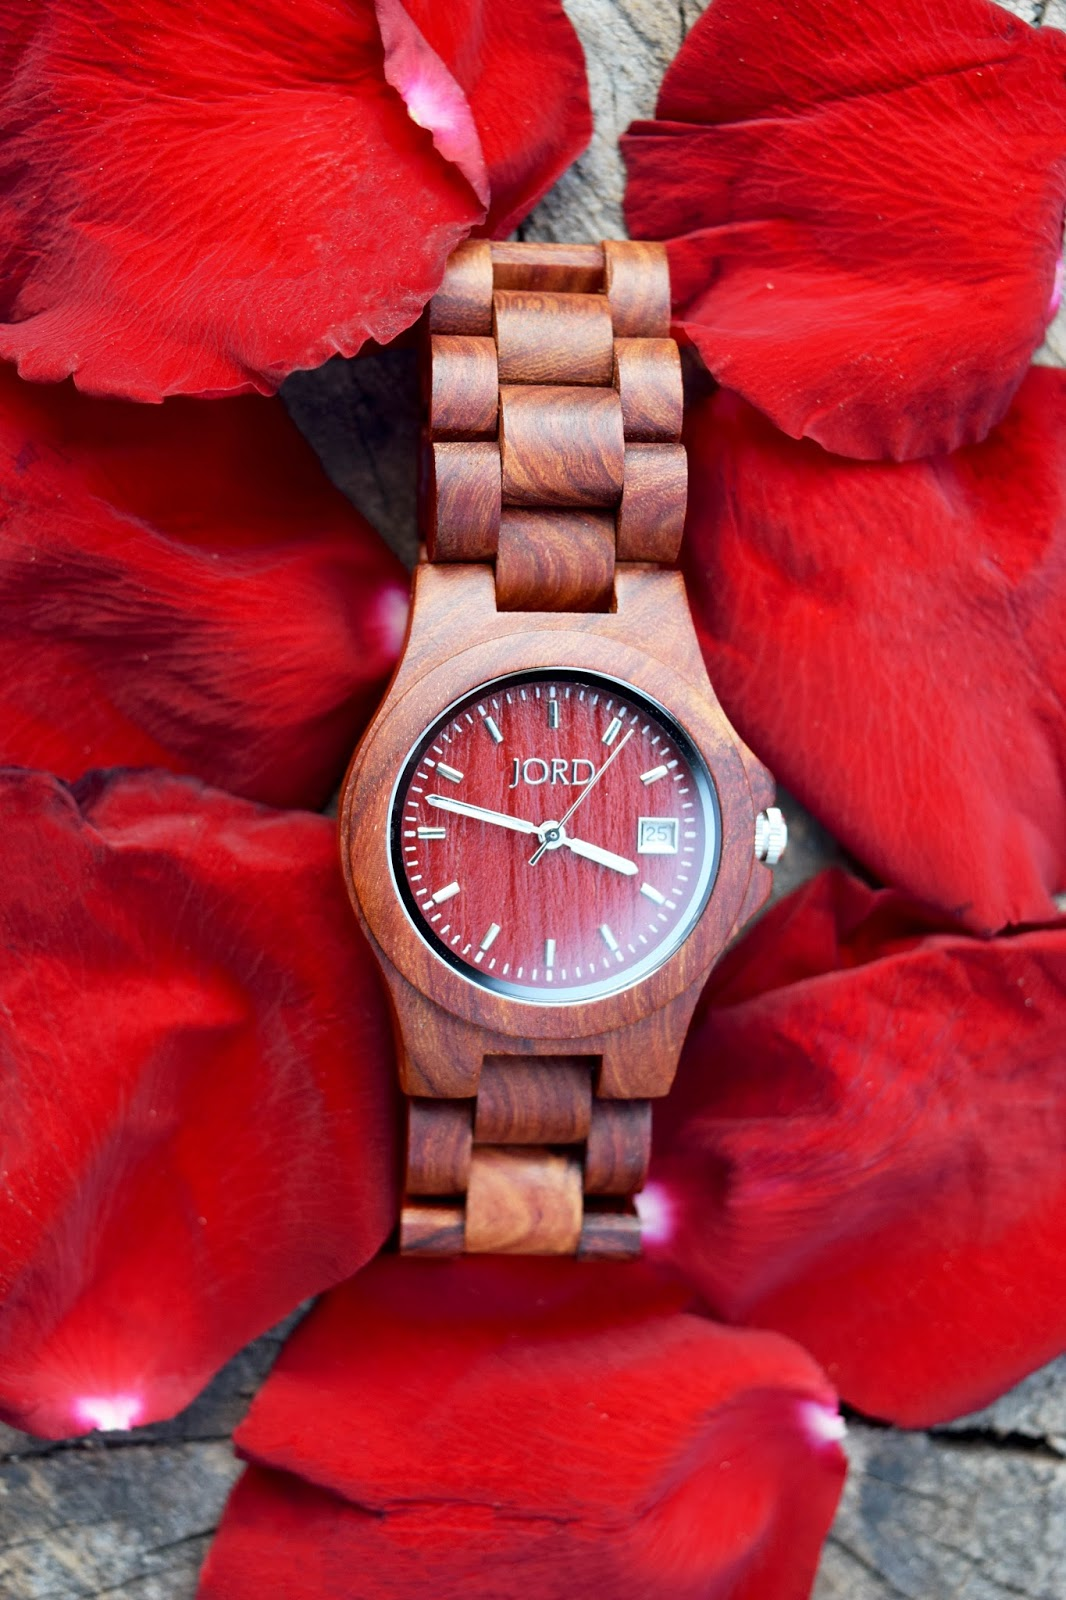 Wood watch, JORD watch, JORD wood watch, wood, elegant watch, unique watch, farhter's day gift